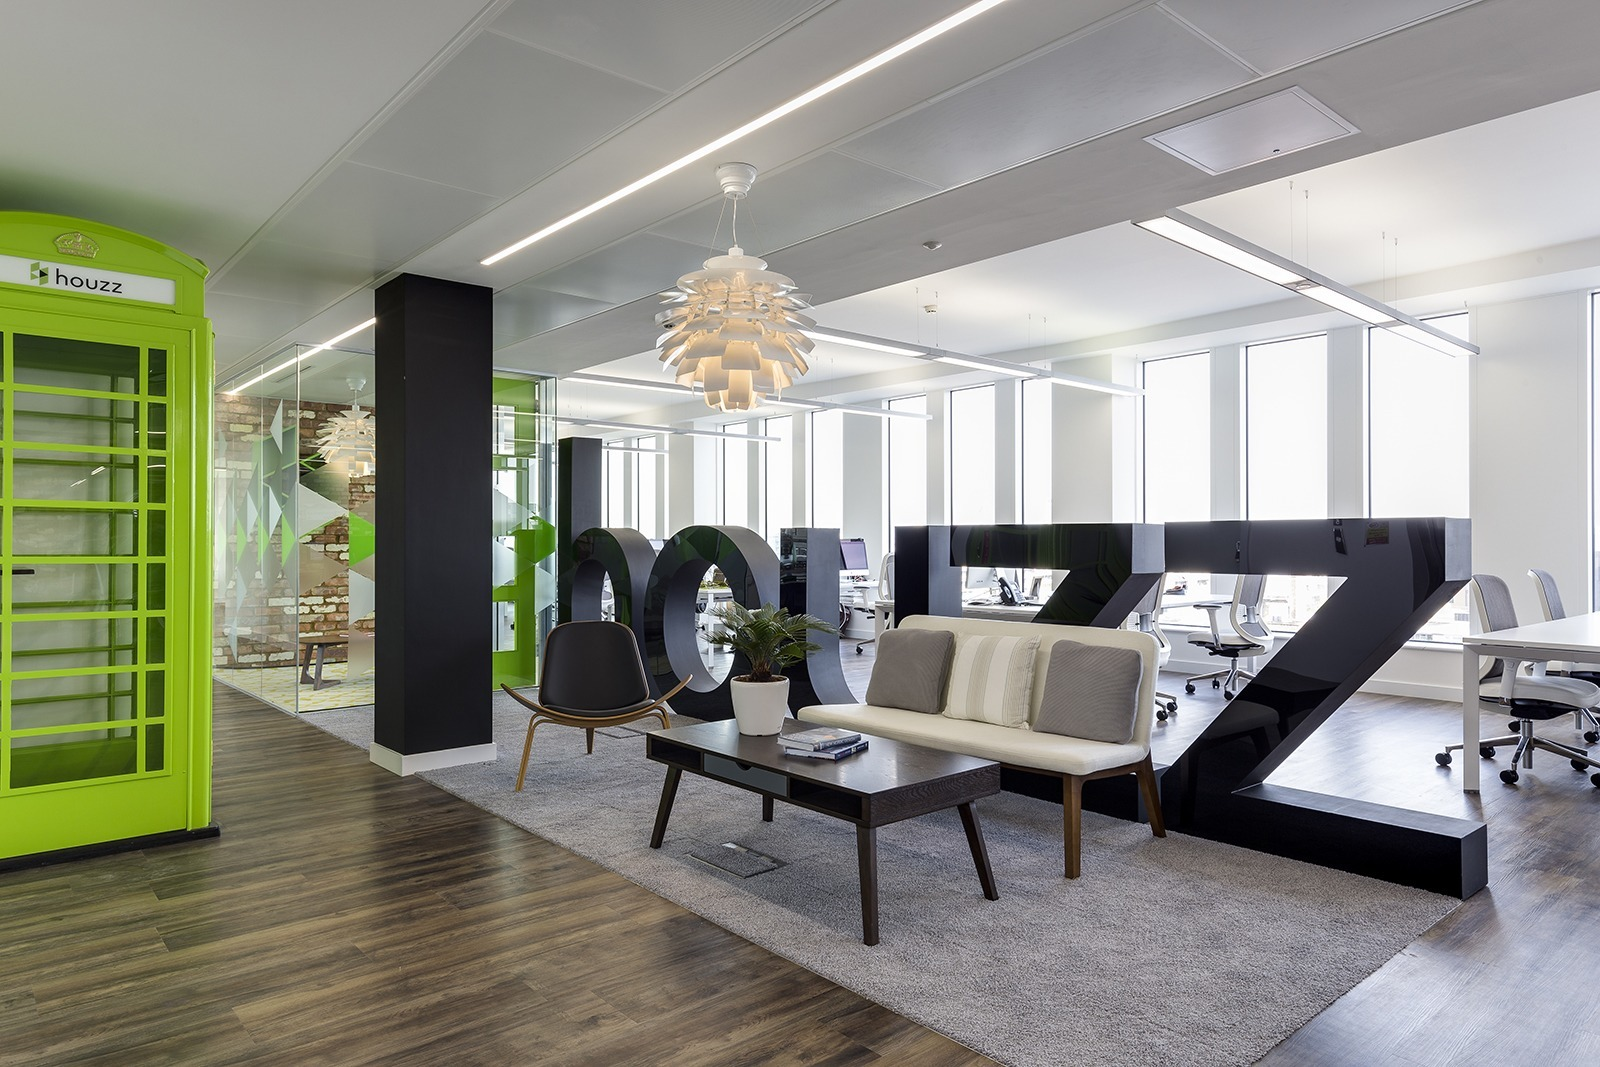 A tour of houzz s new european headquarters officelovin 39 for Home design ideas